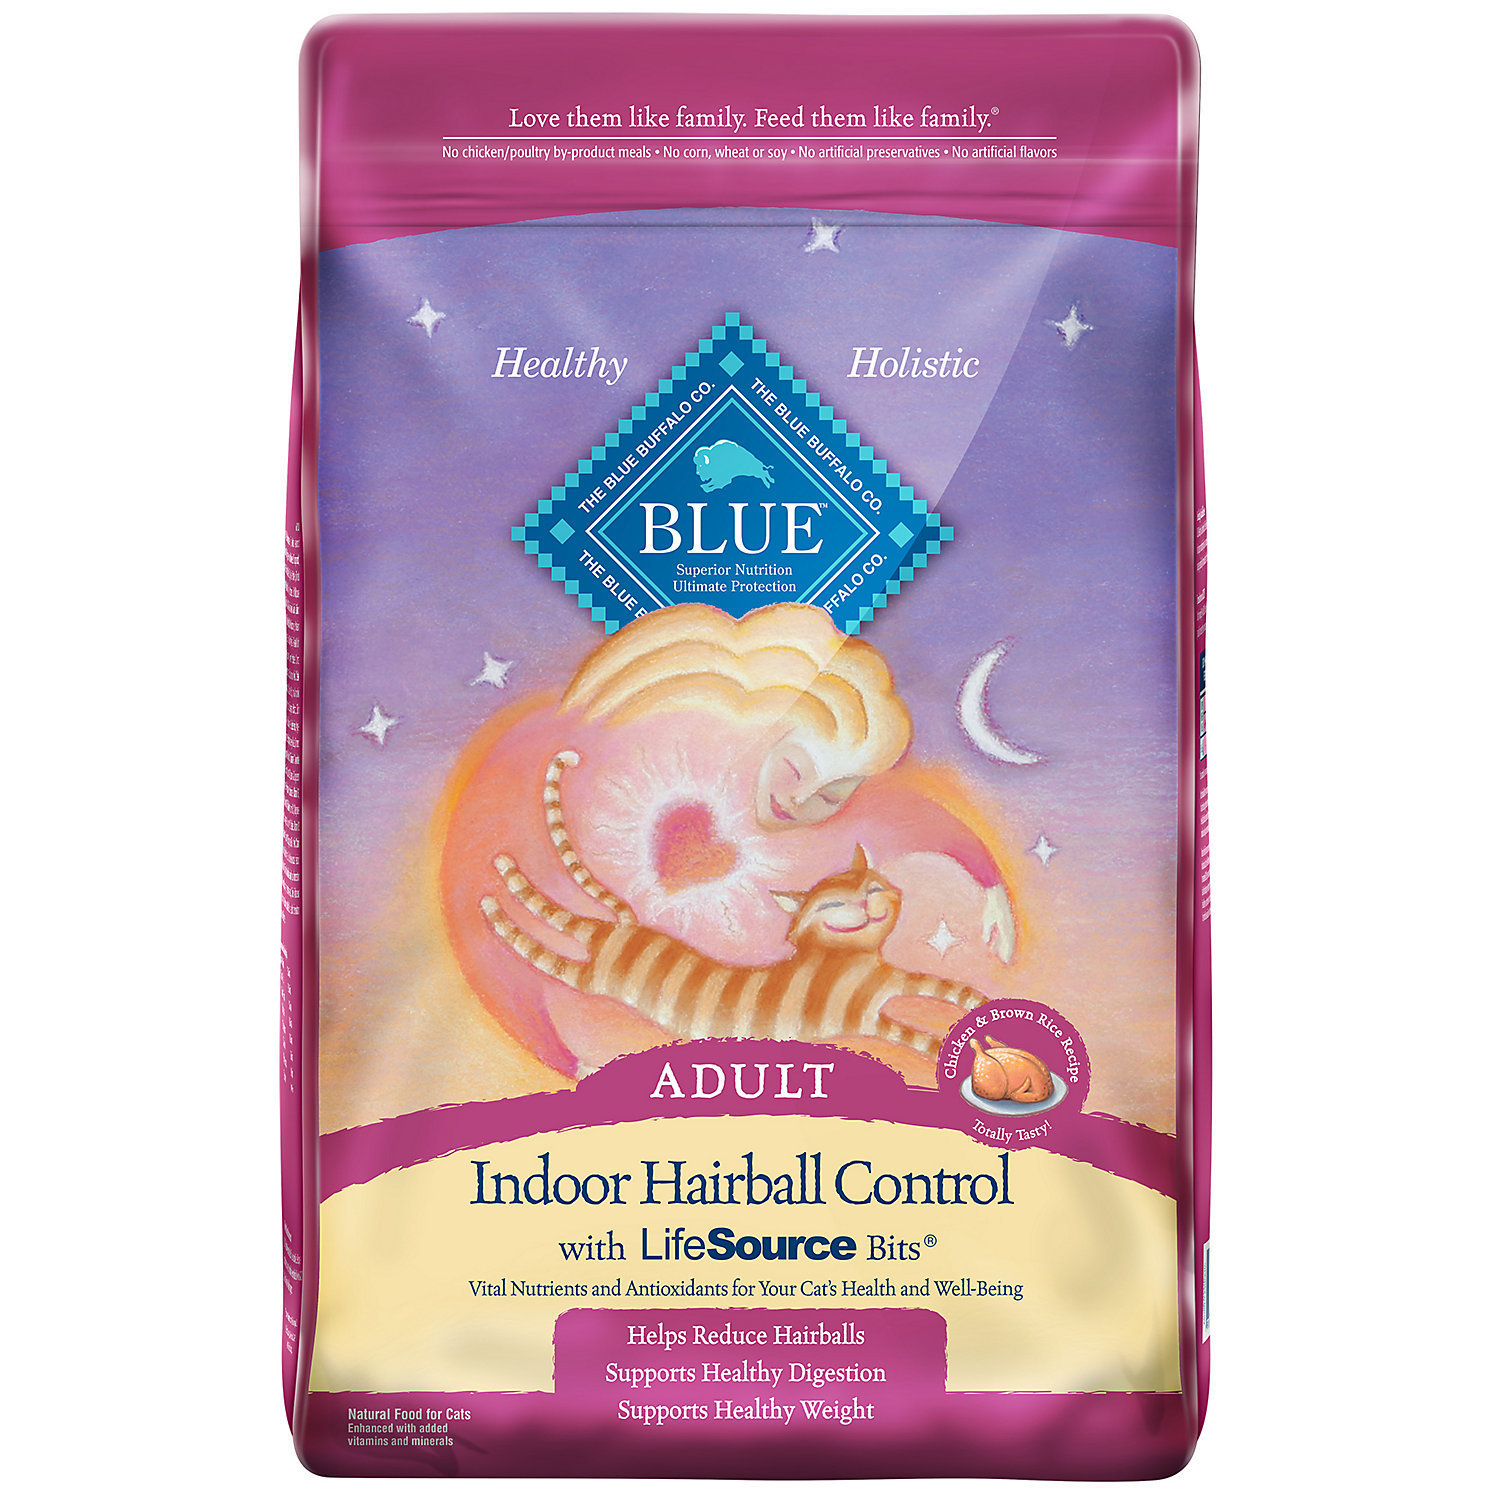 Blue Buffalo Indoor Hairball Control Chicken & Brown Rice Adult Cat Food, 15 lbs